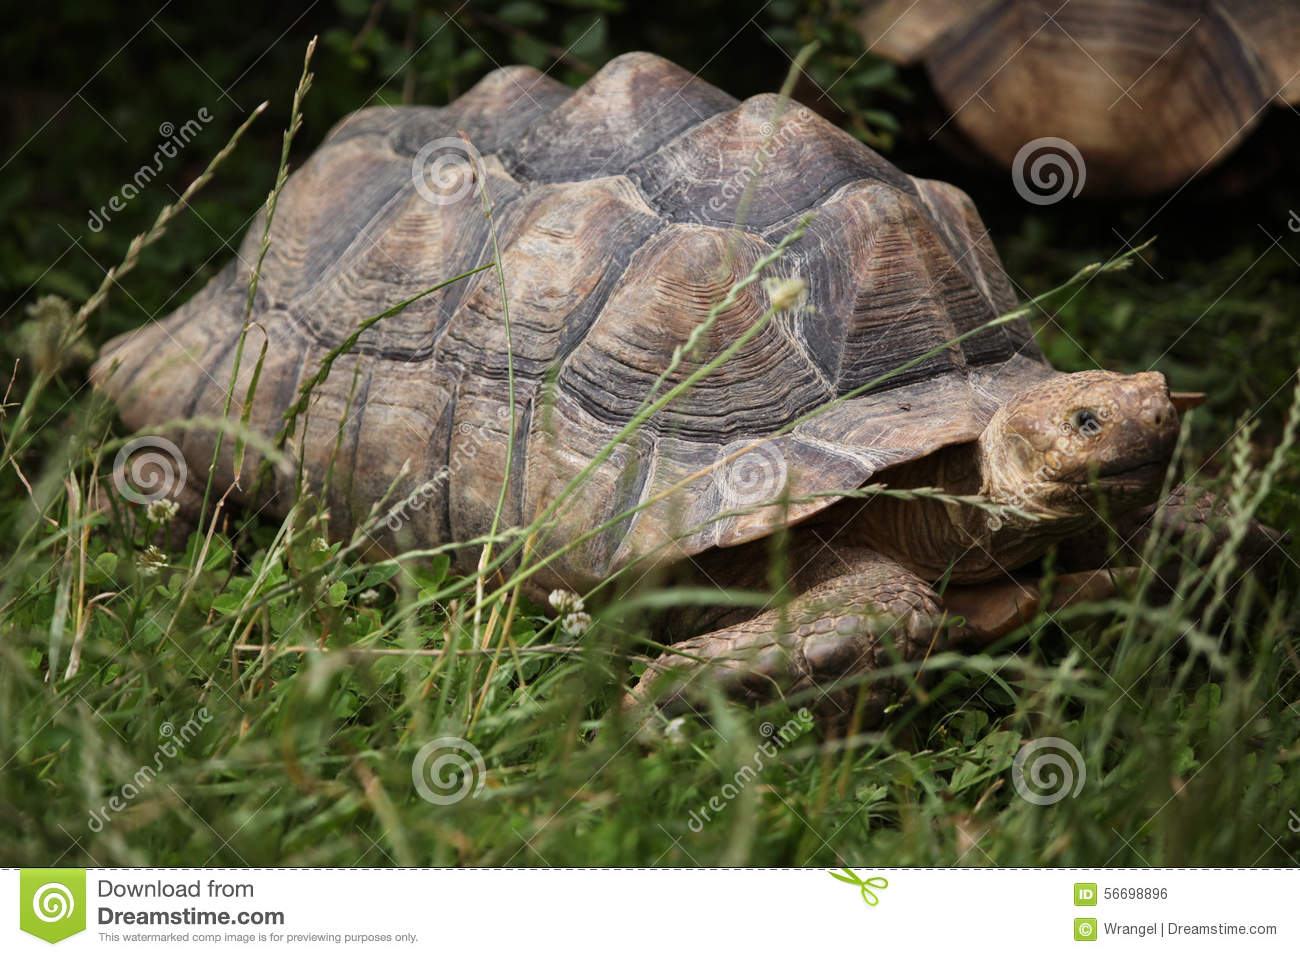 Sulcata Tortoise clipart #15, Download drawings